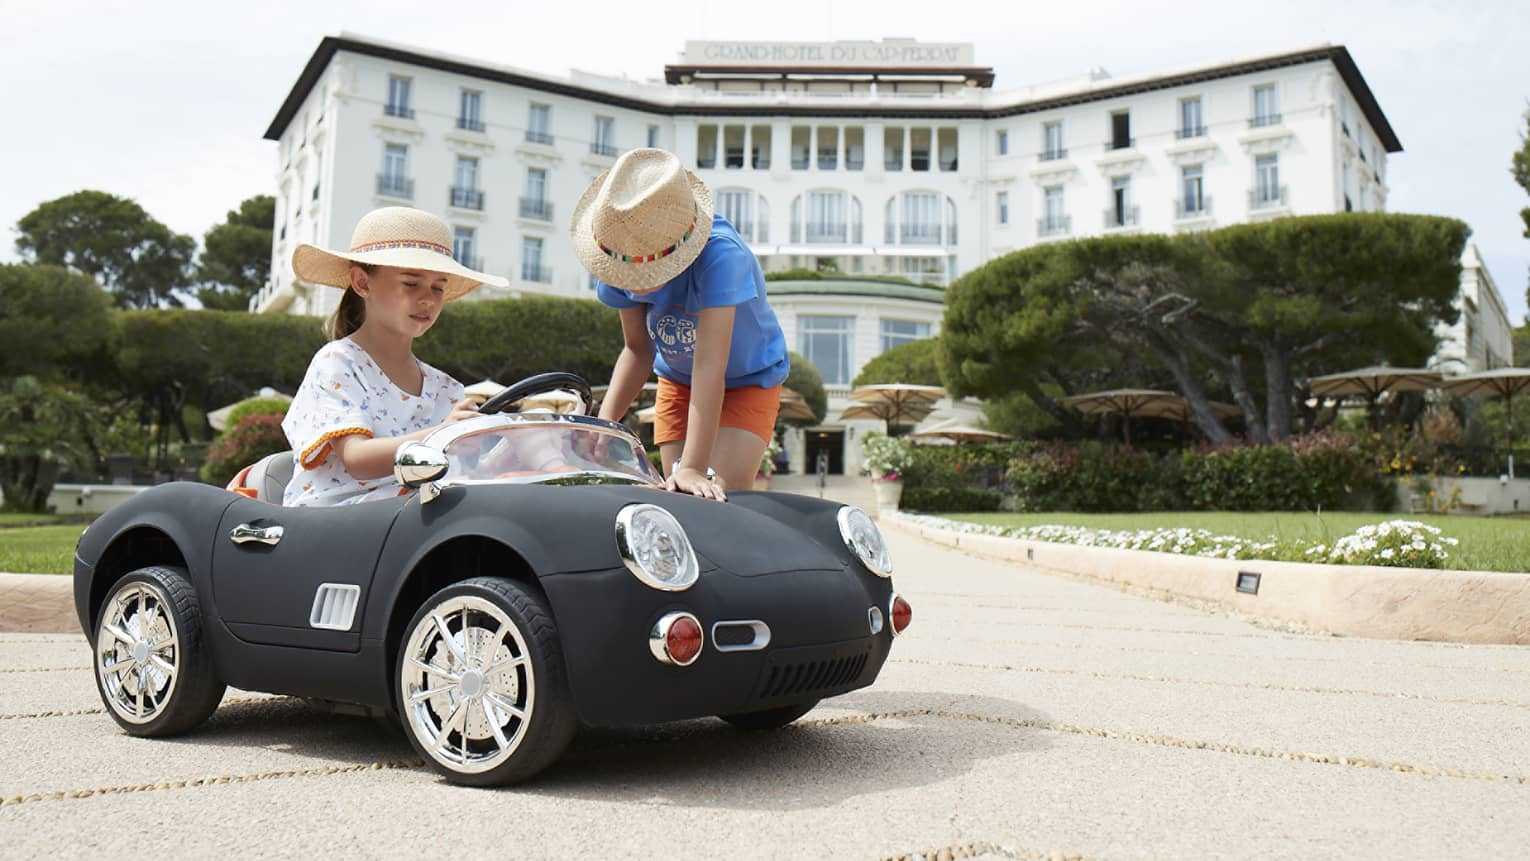 Girl wearing floral dress and straw hat driving black luxury mini convertible, boy in straw hat leaning over, hotel in backdrop